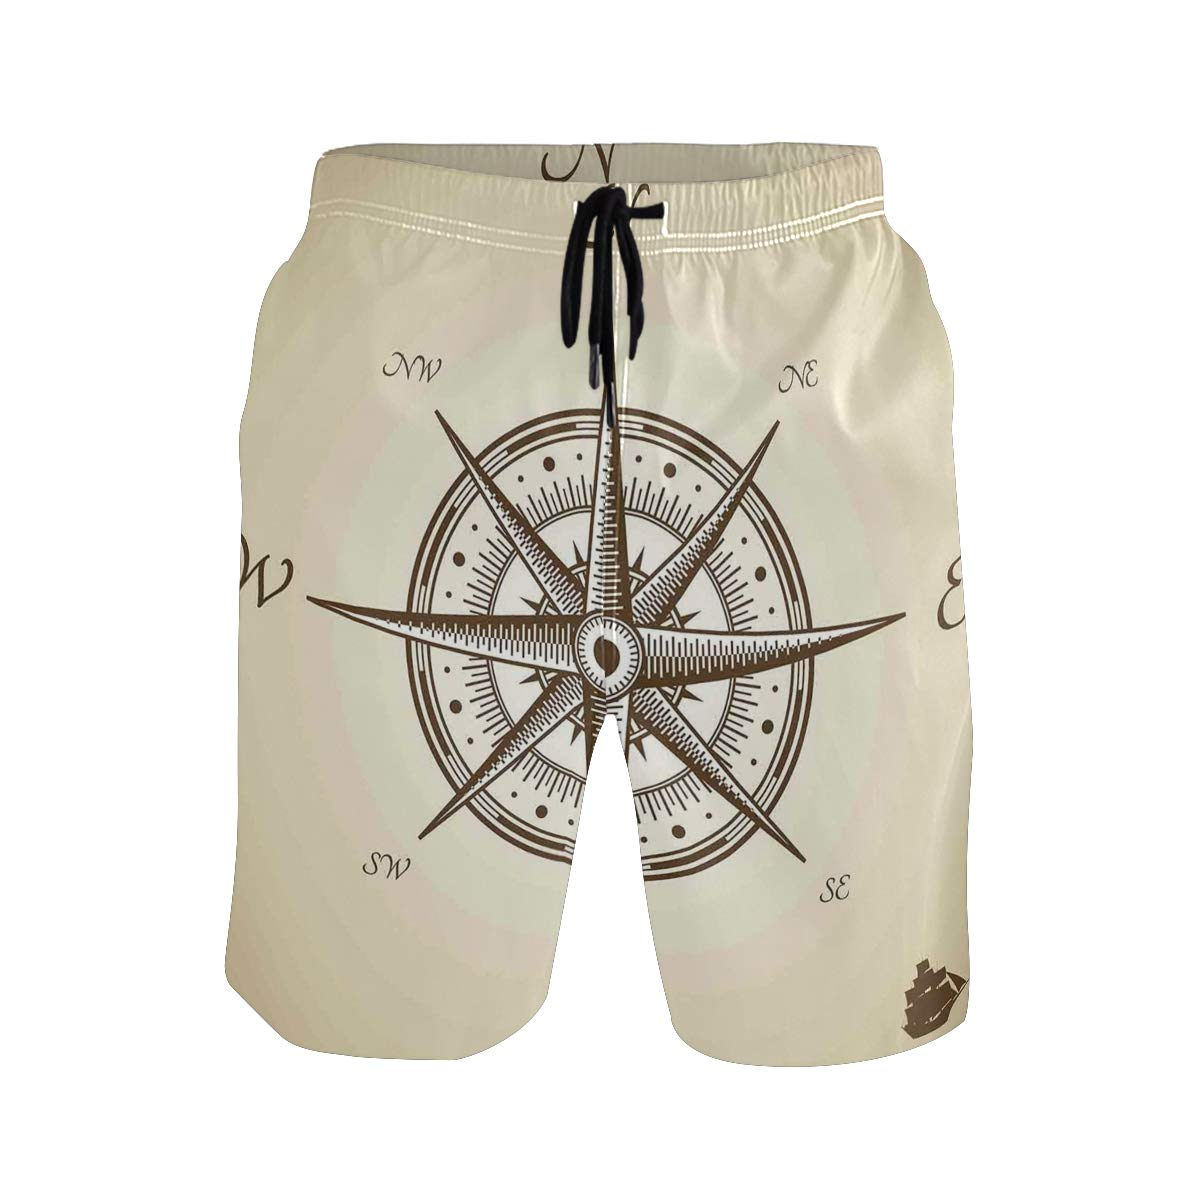 Compass Illustration Navigating Marine Instrument Antique Collection Casual Swim Trunks All